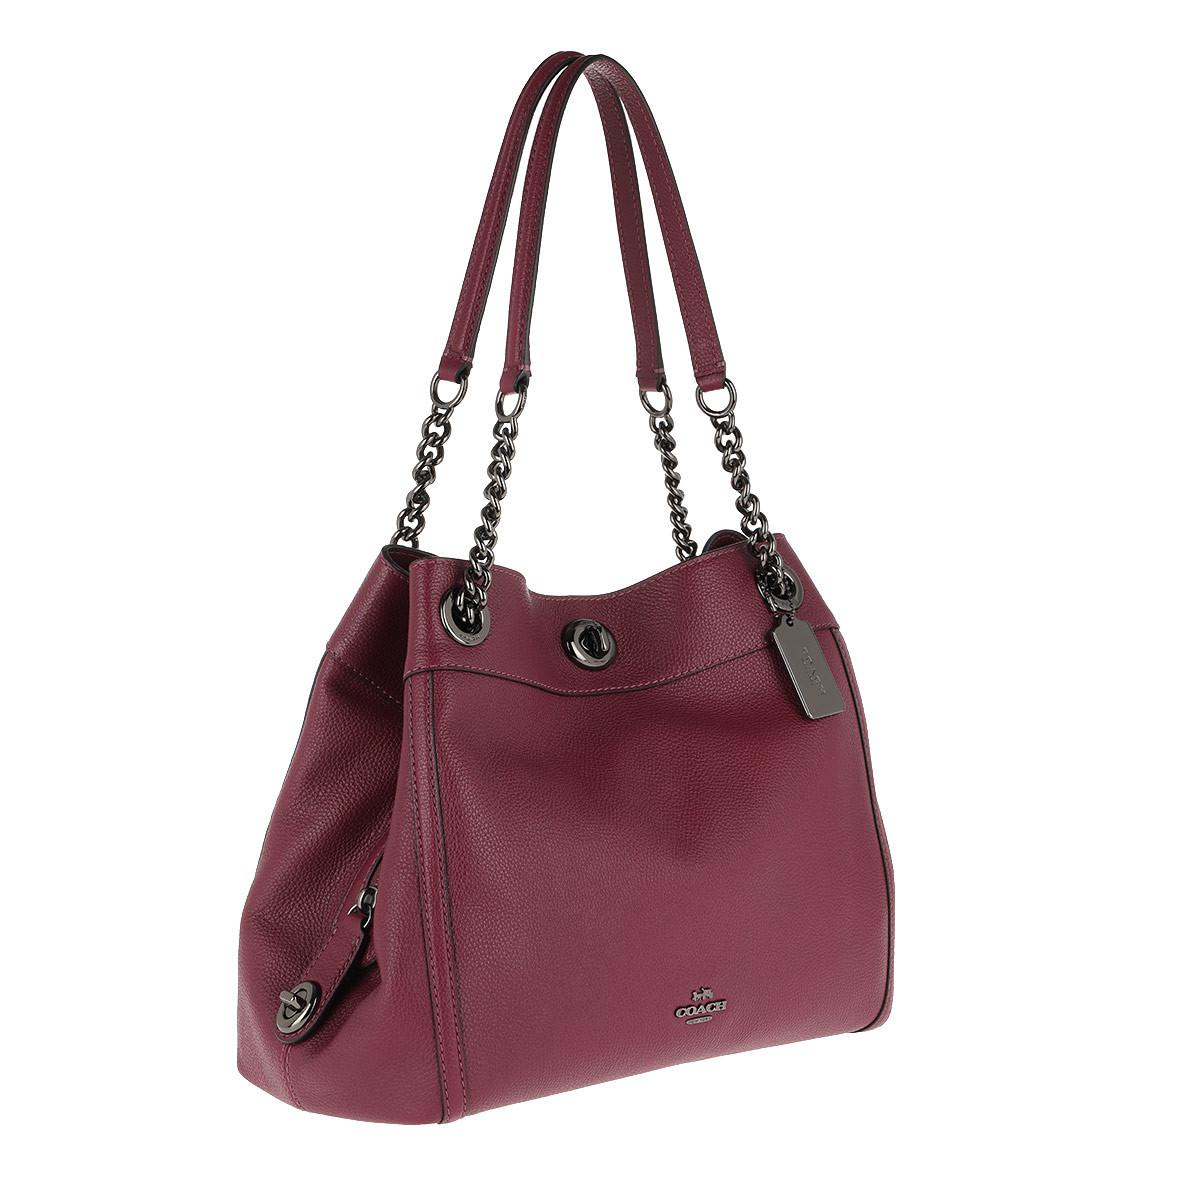 5513d19e5fe6 COACH - Red Polished Leather Turnlock Edie Shoulder Bag Dark Berry - Lyst.  View fullscreen